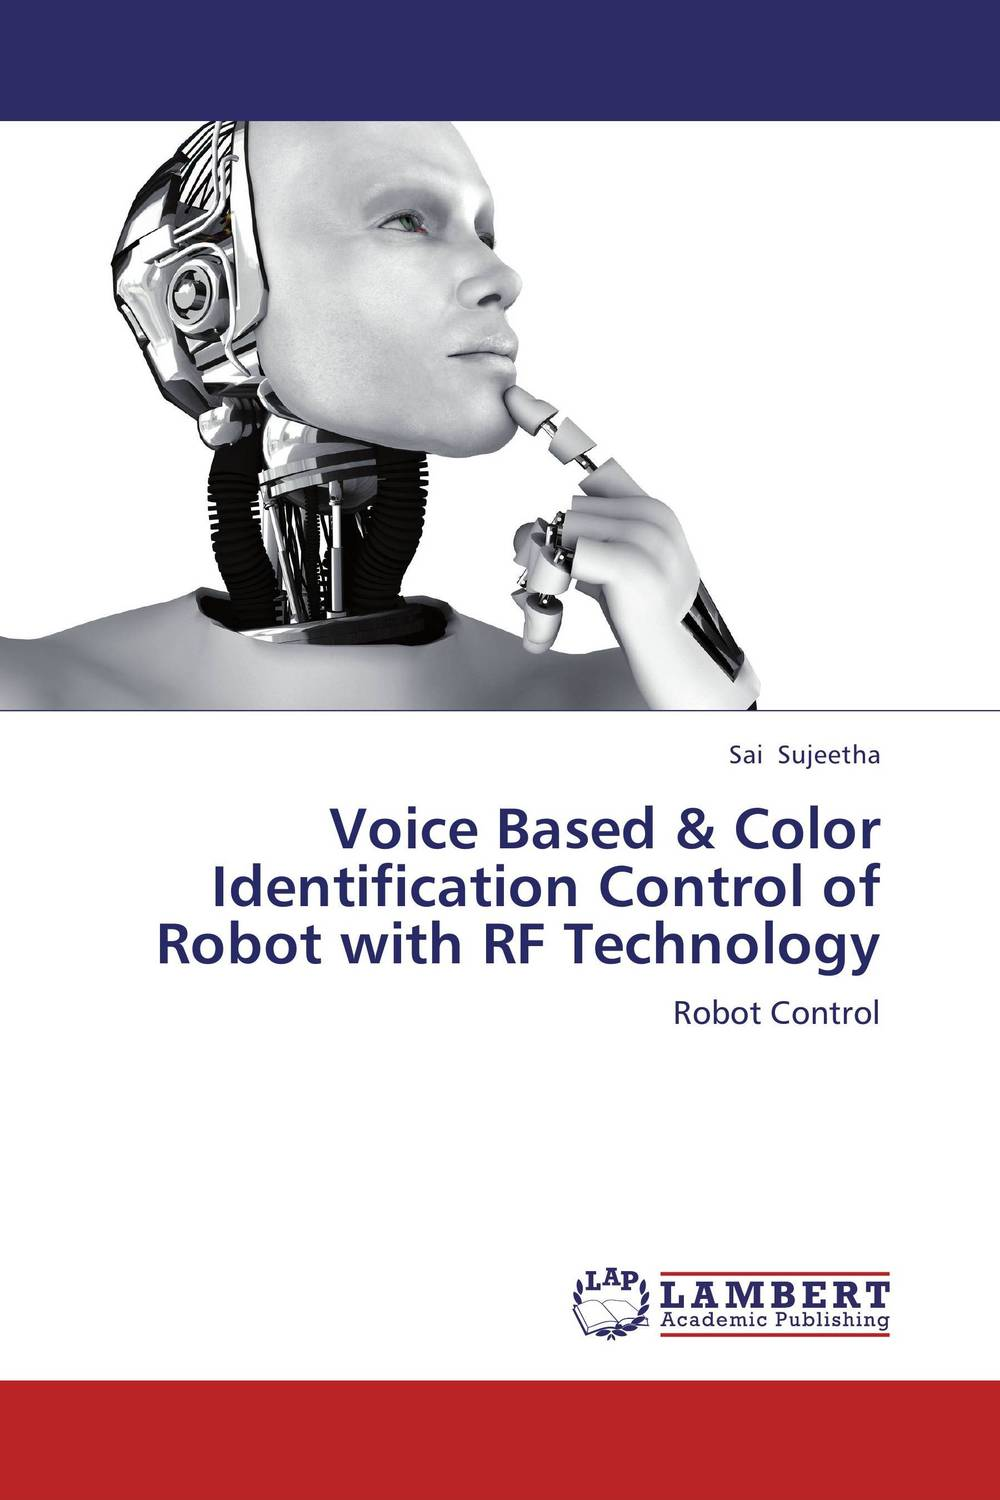 Voice Based & Color Identification Control of Robot with RF Technology optimal and efficient motion planning of redundant robot manipulators